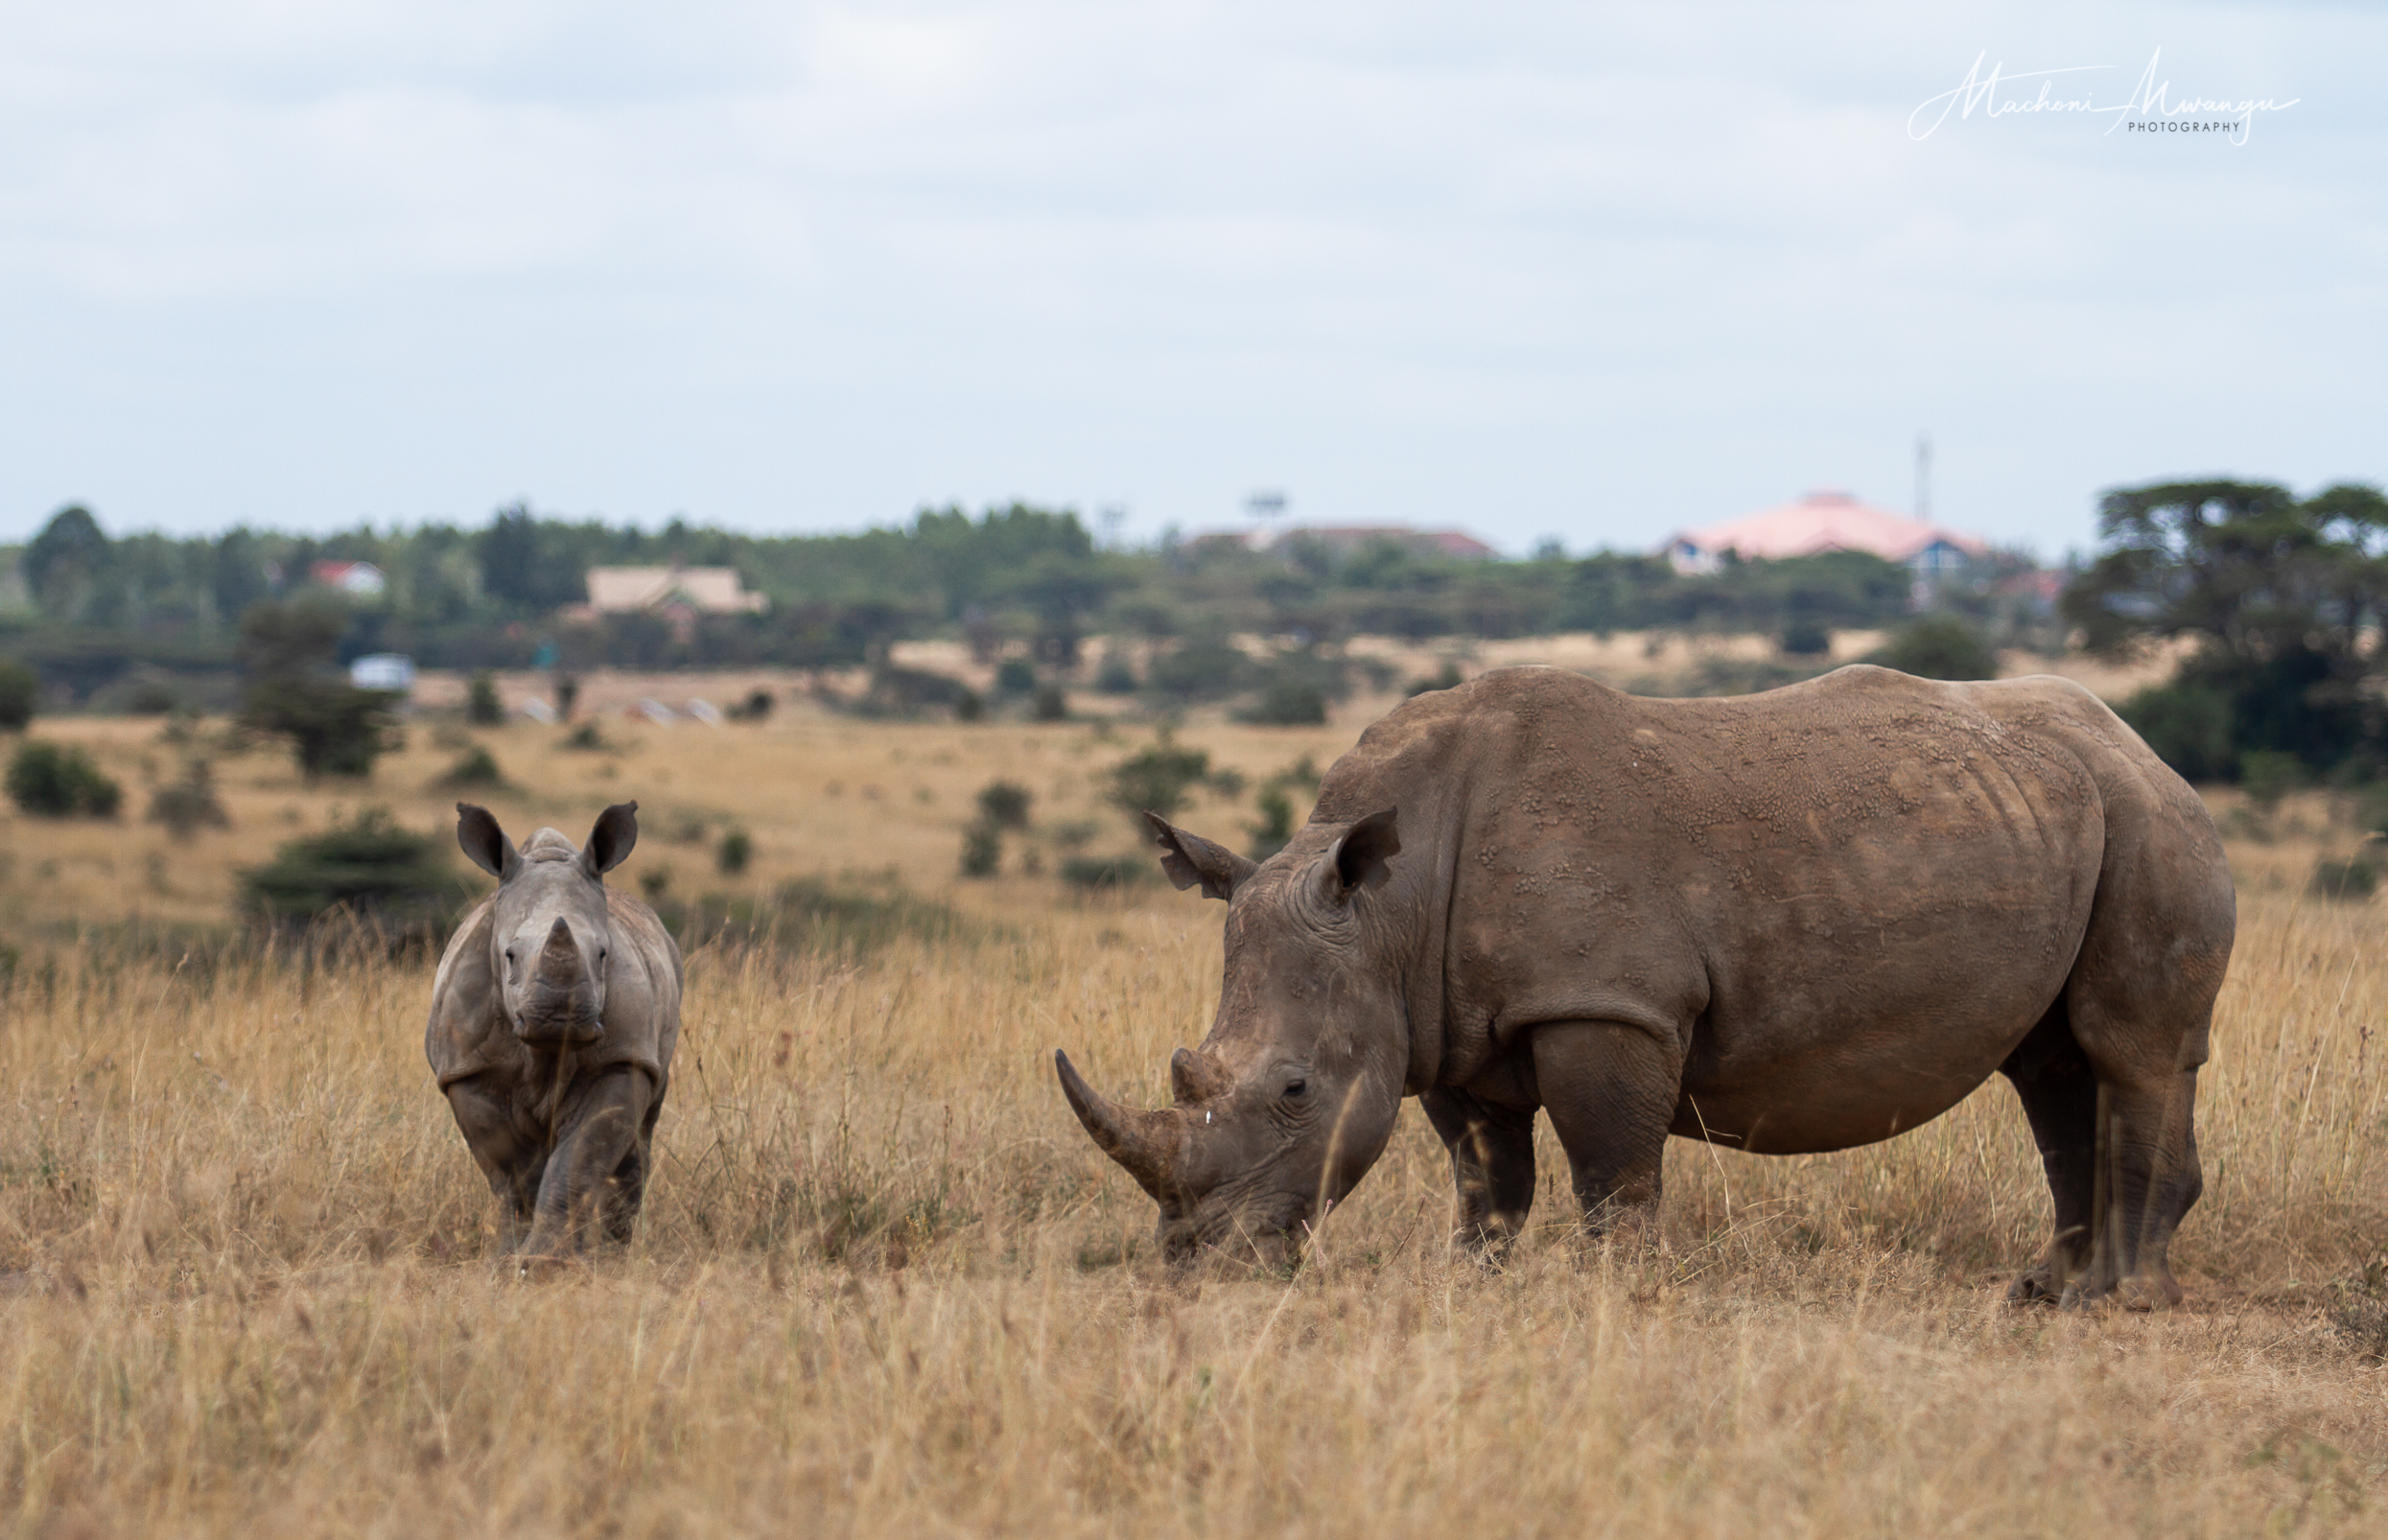 Mama and Baby Rhino in my backyard with a view of the area towards Ongata Rongai